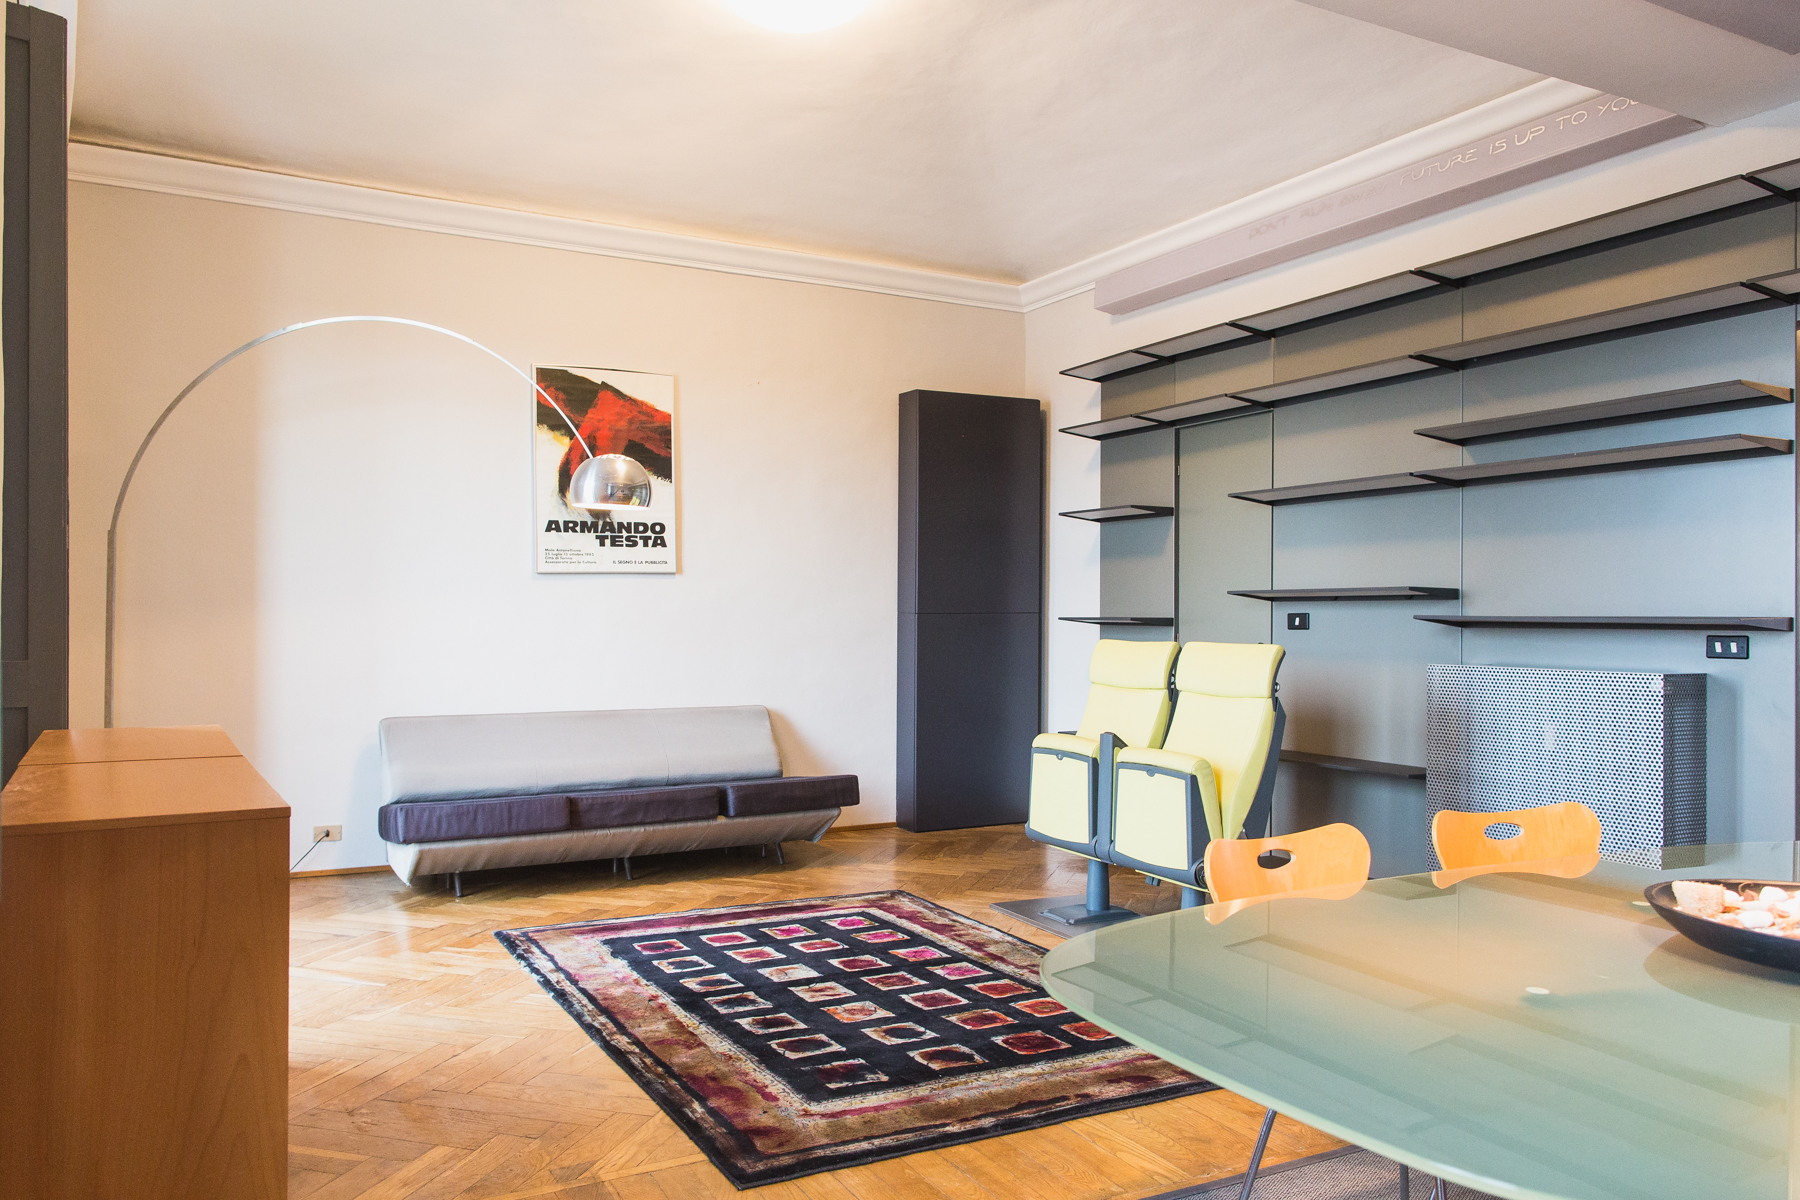 Additional photo for property listing at Essential and modern style apartment Corso Guglielmo Marconi Torino, Turin 10125 Italien